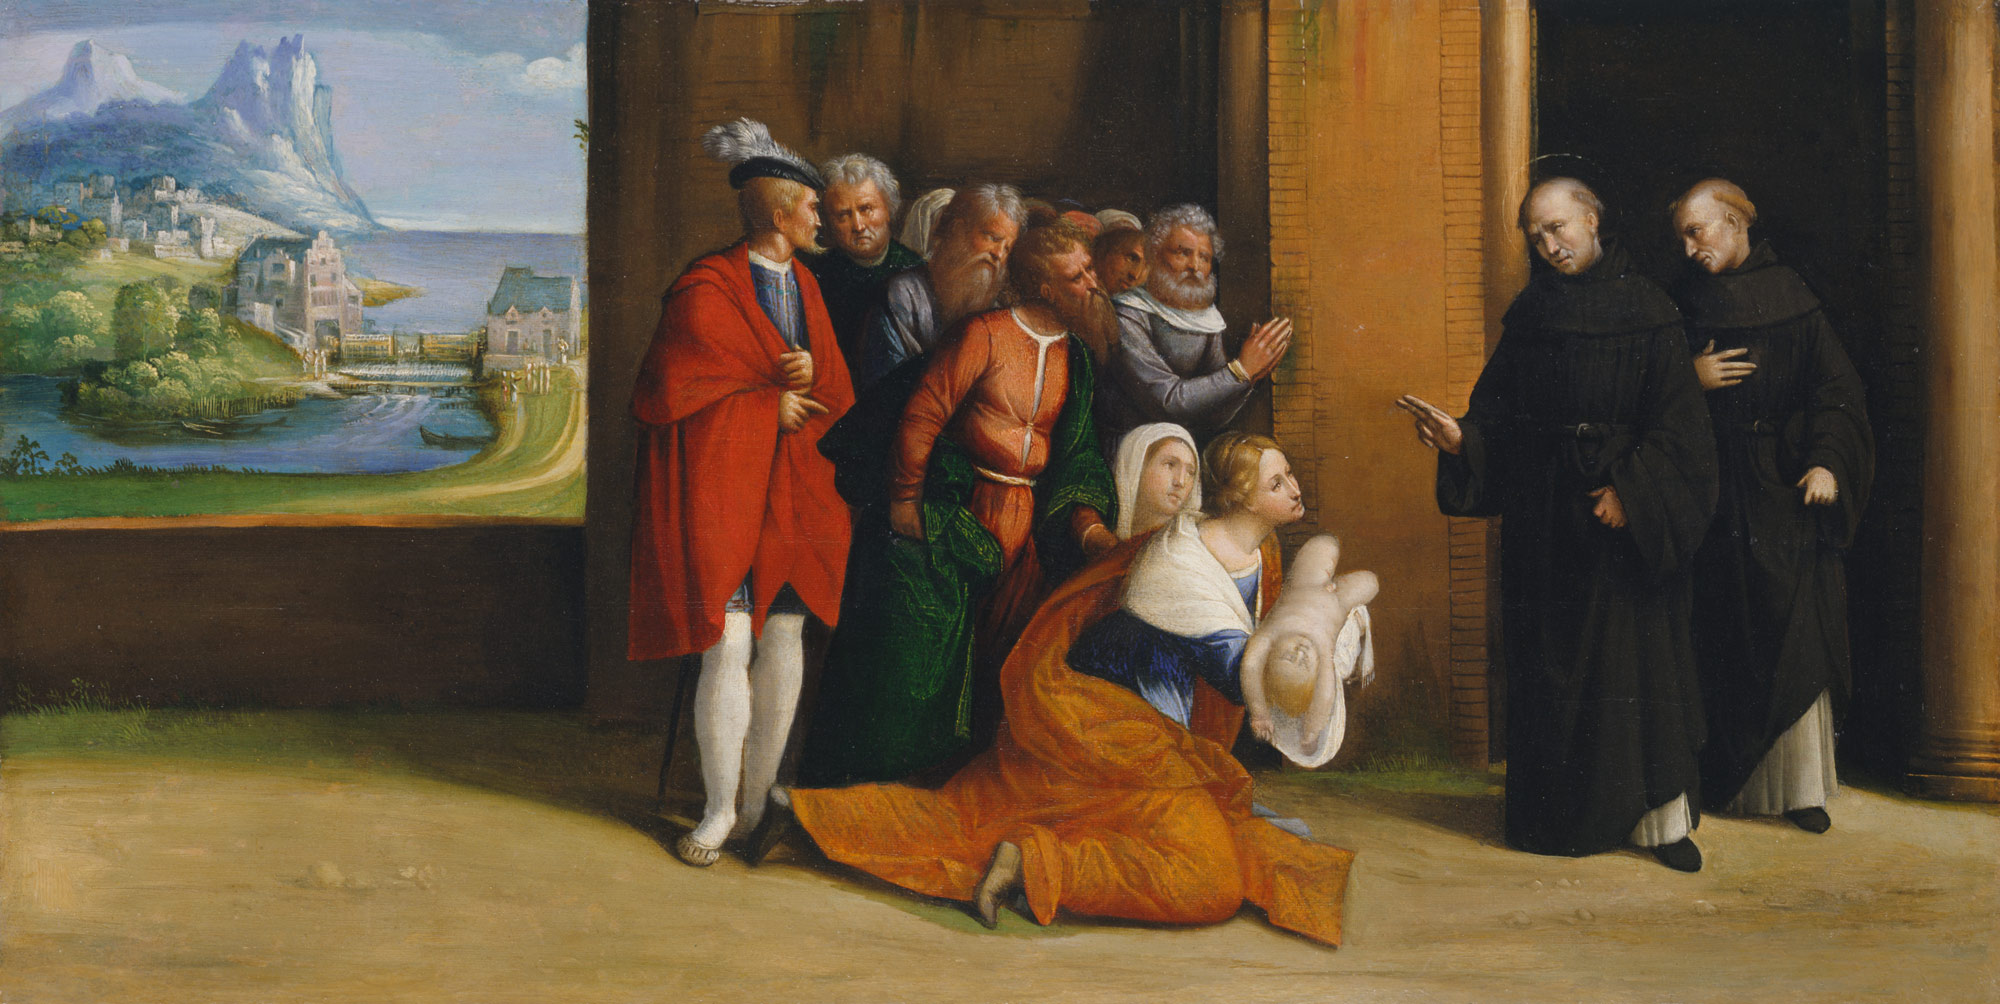 Saint Nicholas of Tolentino Reviving a Child